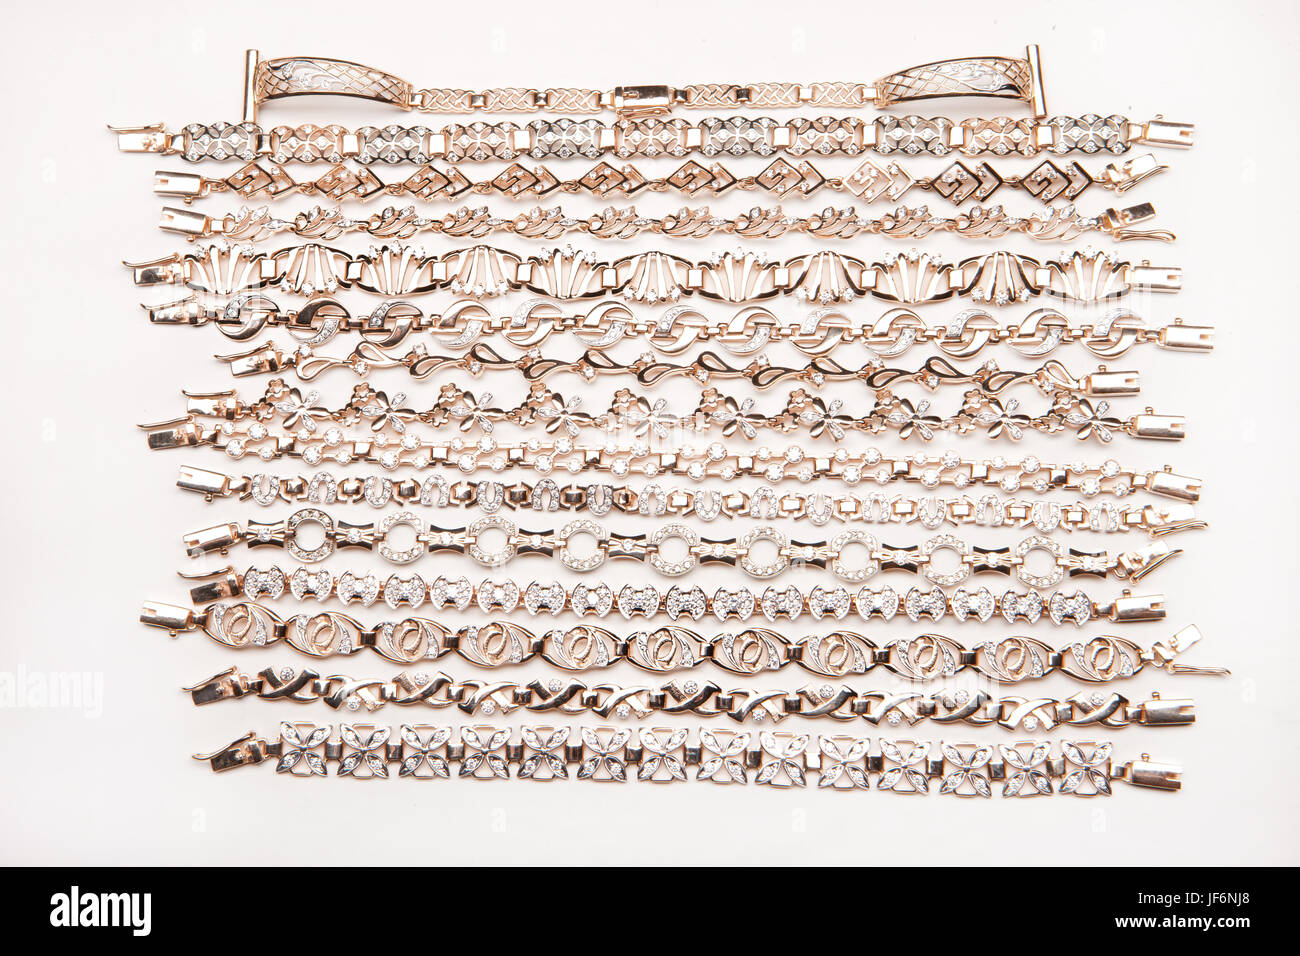 Golden Bracelets - Stock Image